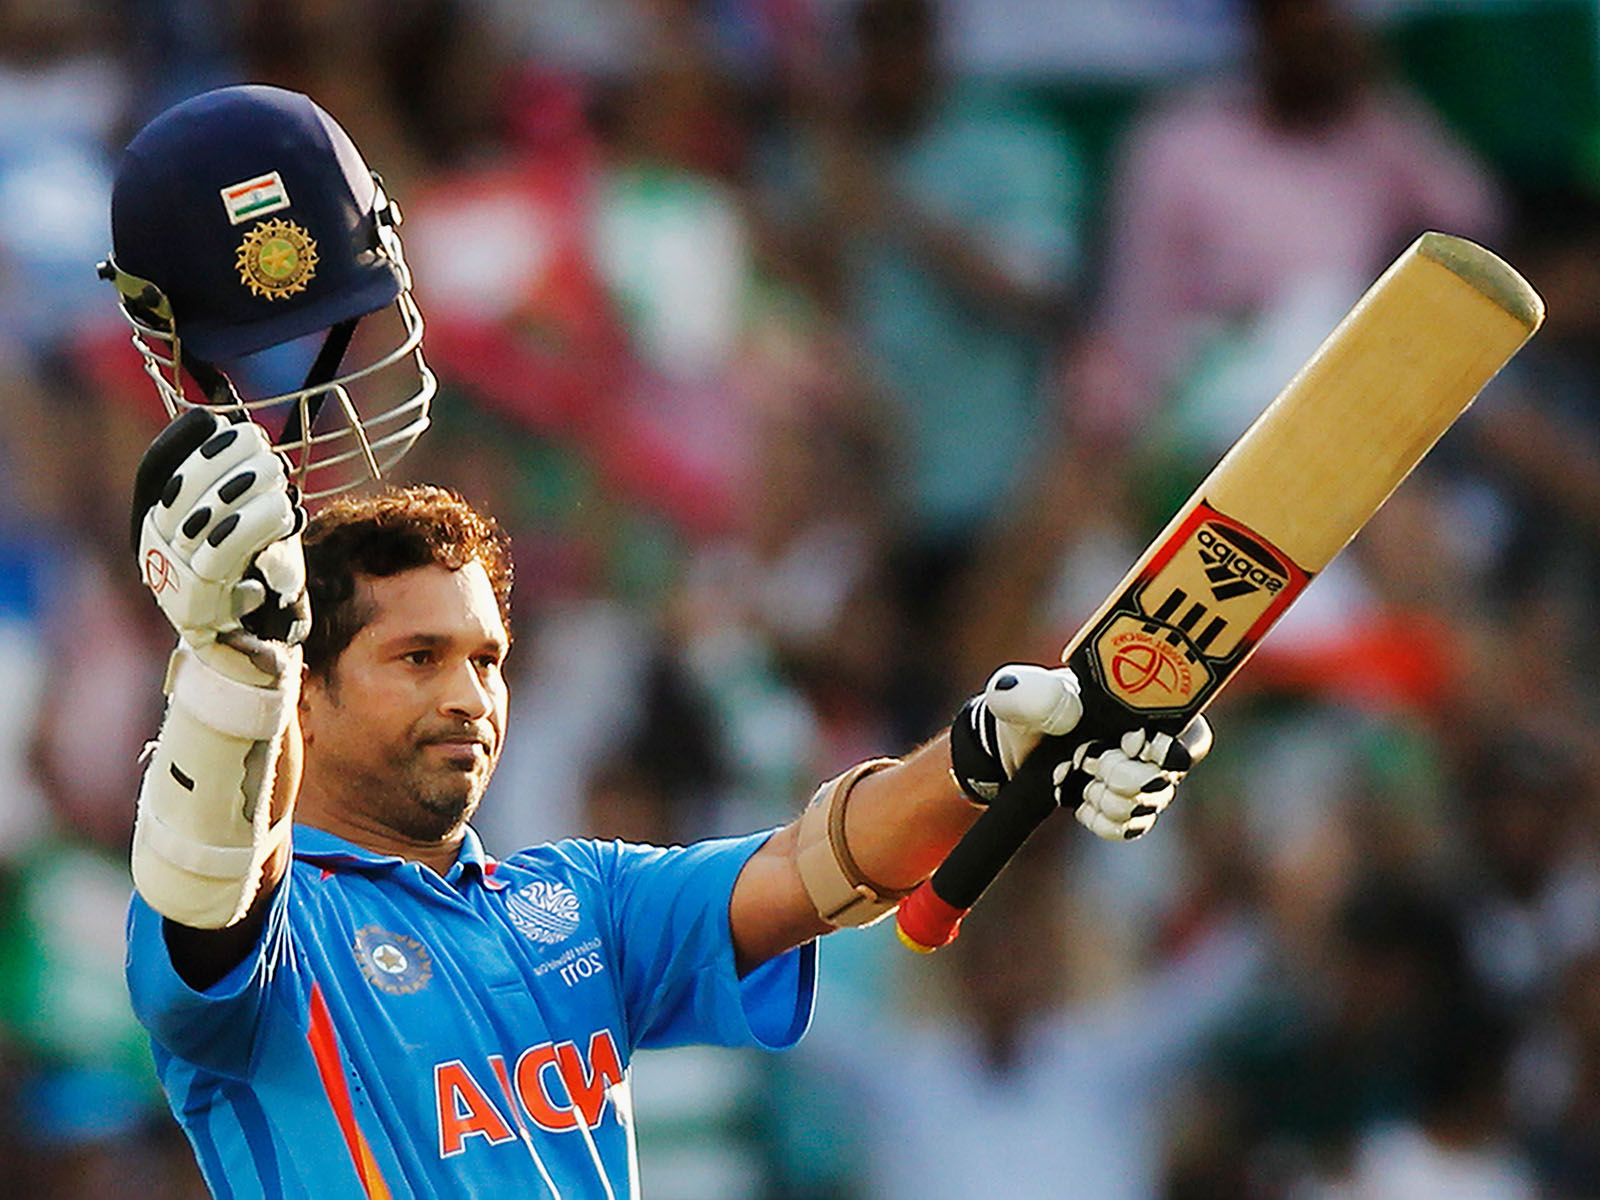 sachin tendulkar wallpapers - top wallpaper desktop